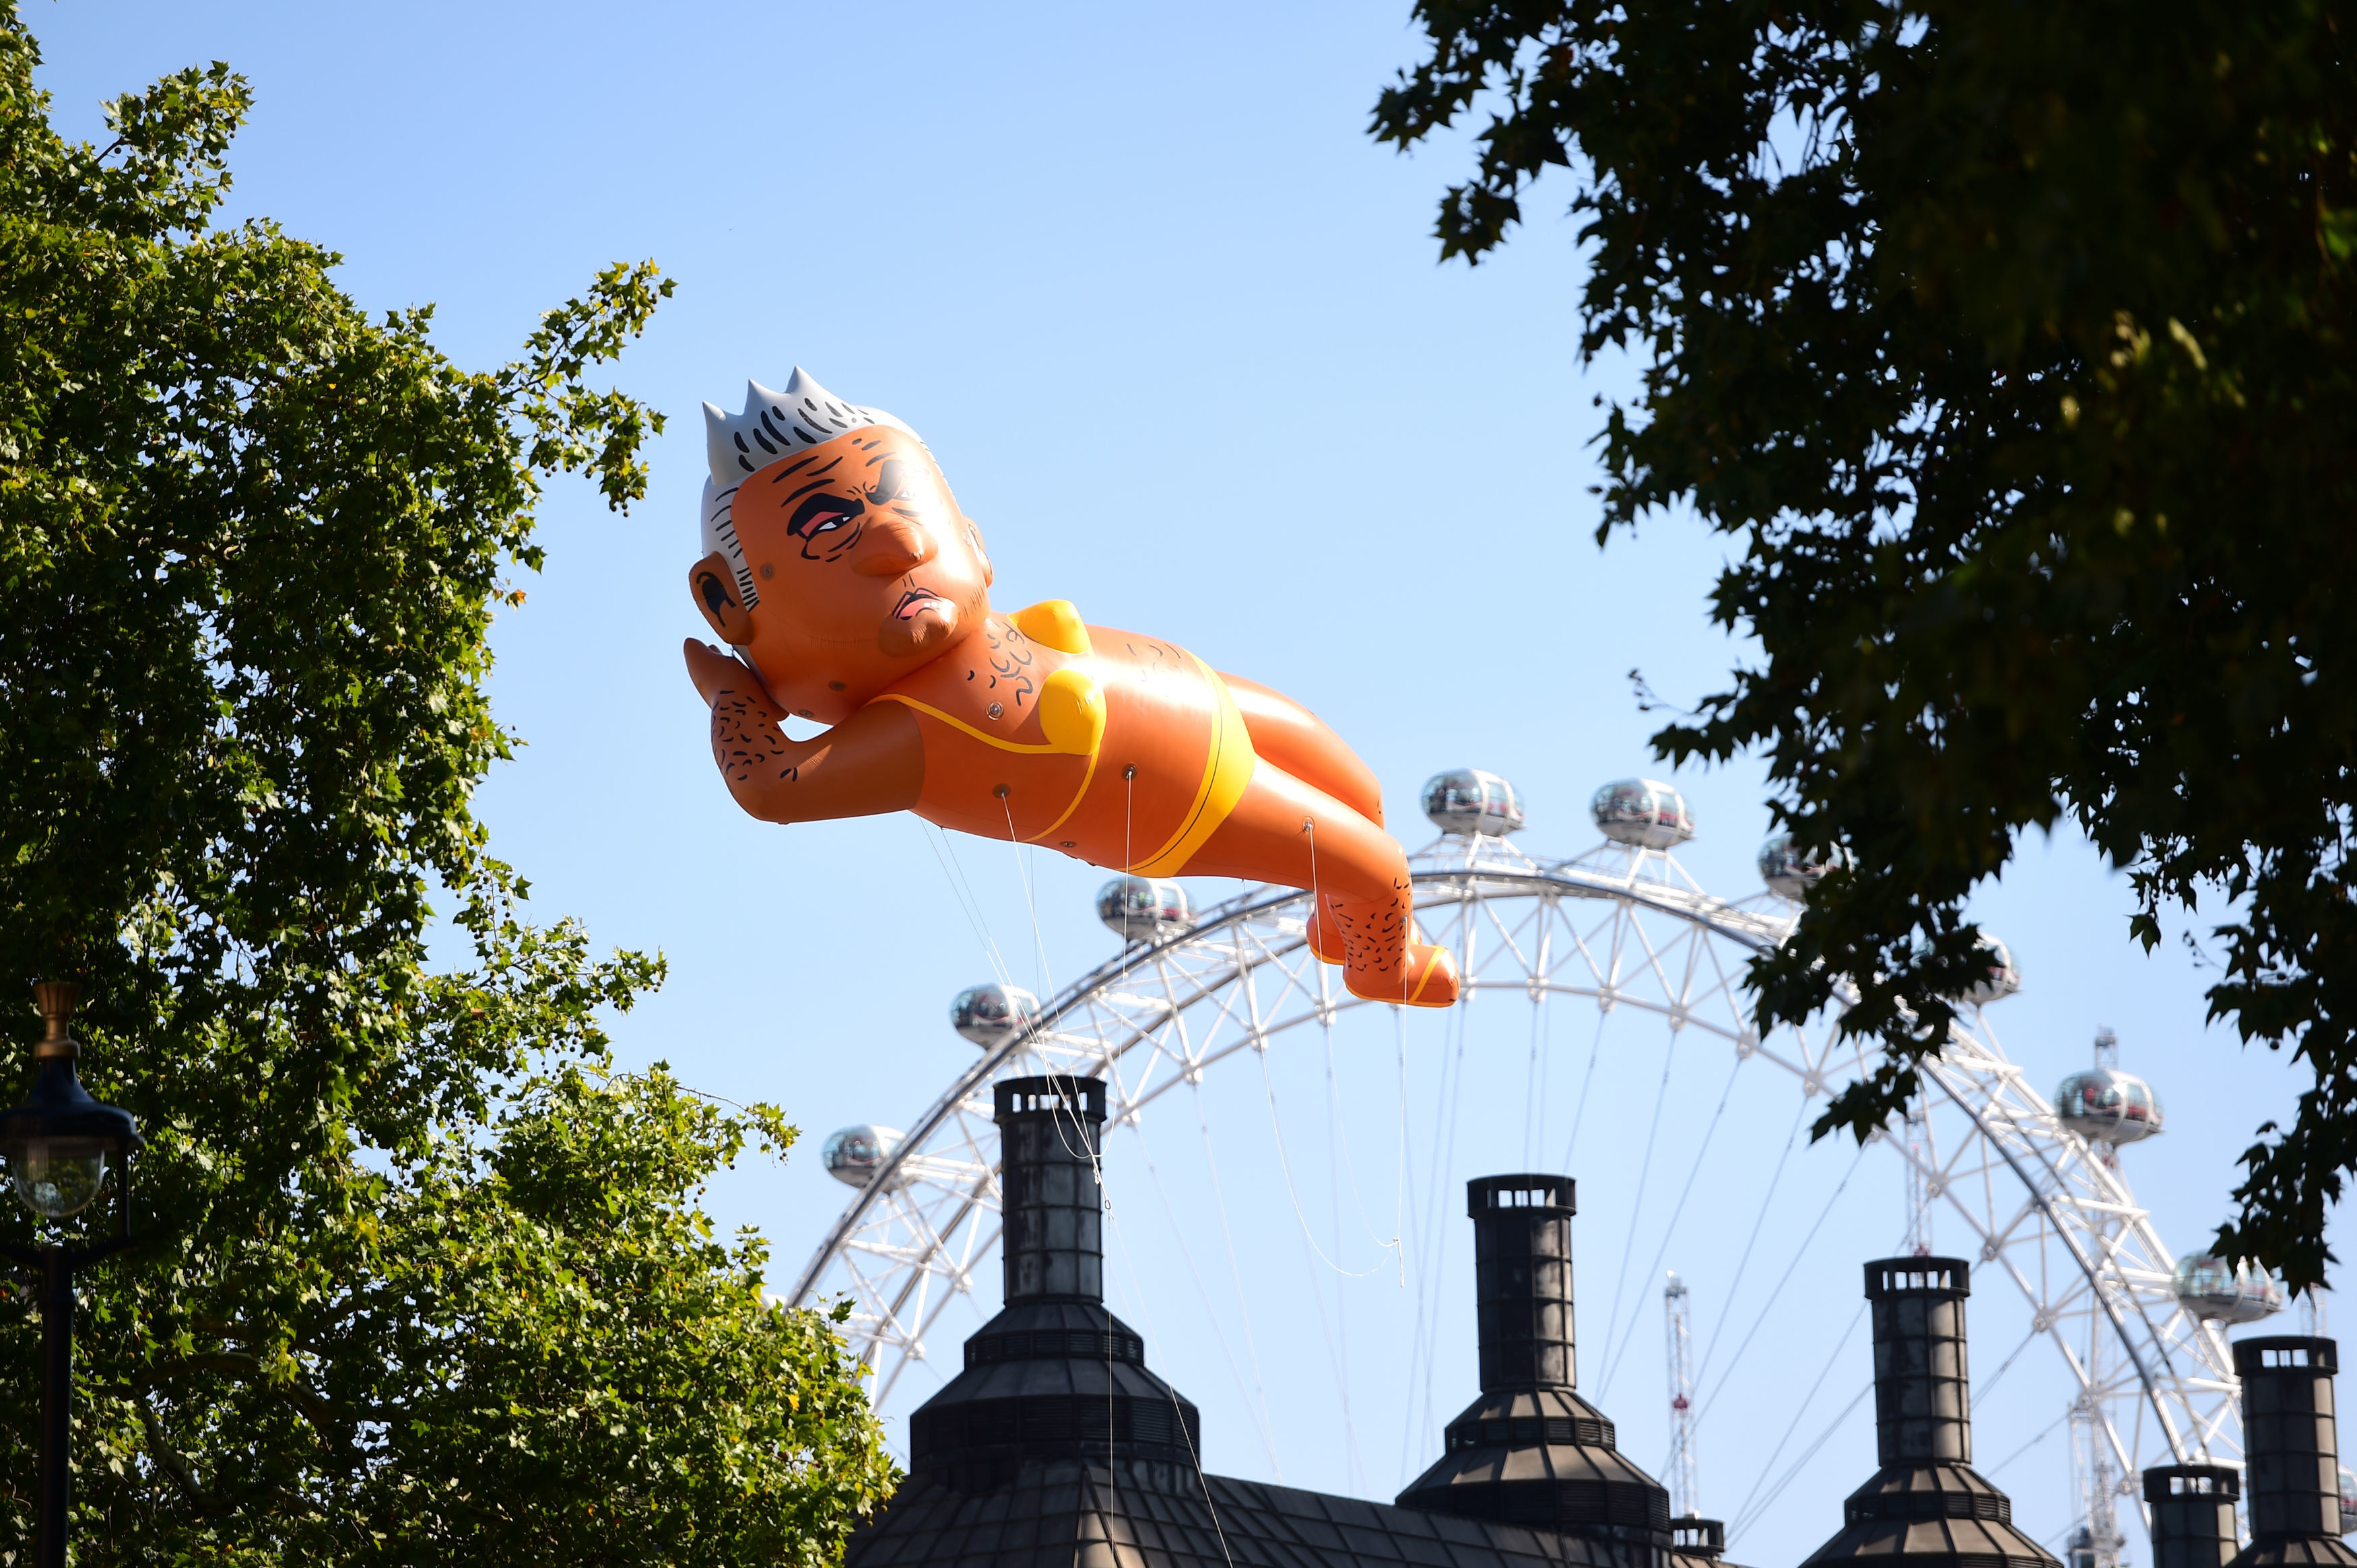 Balloon poking fun at London mayor flies over British capital